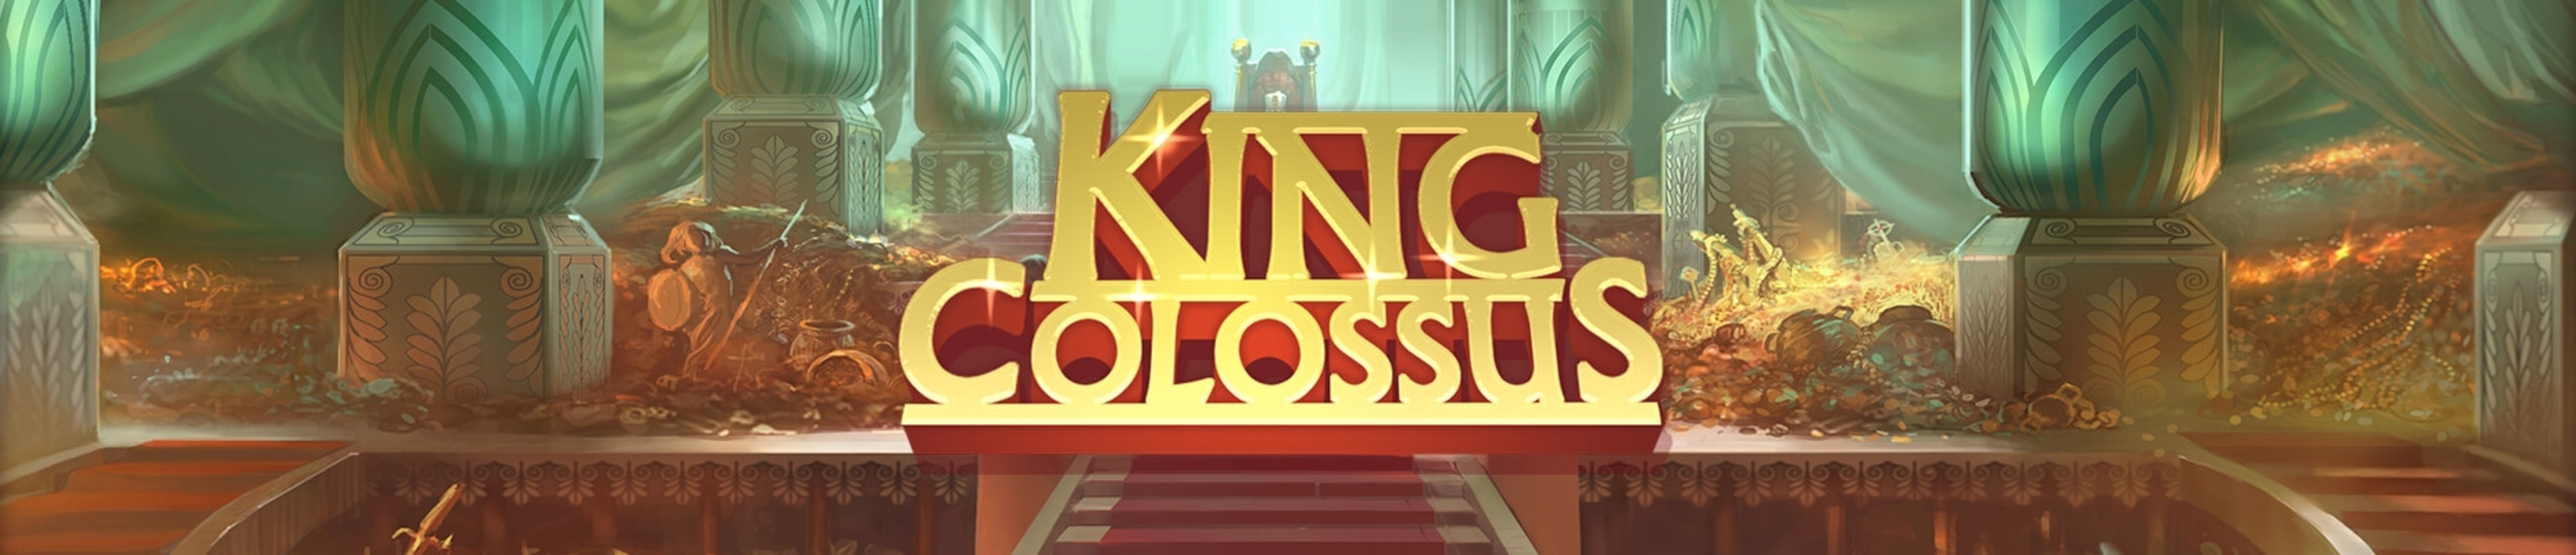 The King Colossus Online Slot Demo Game by Quickspin